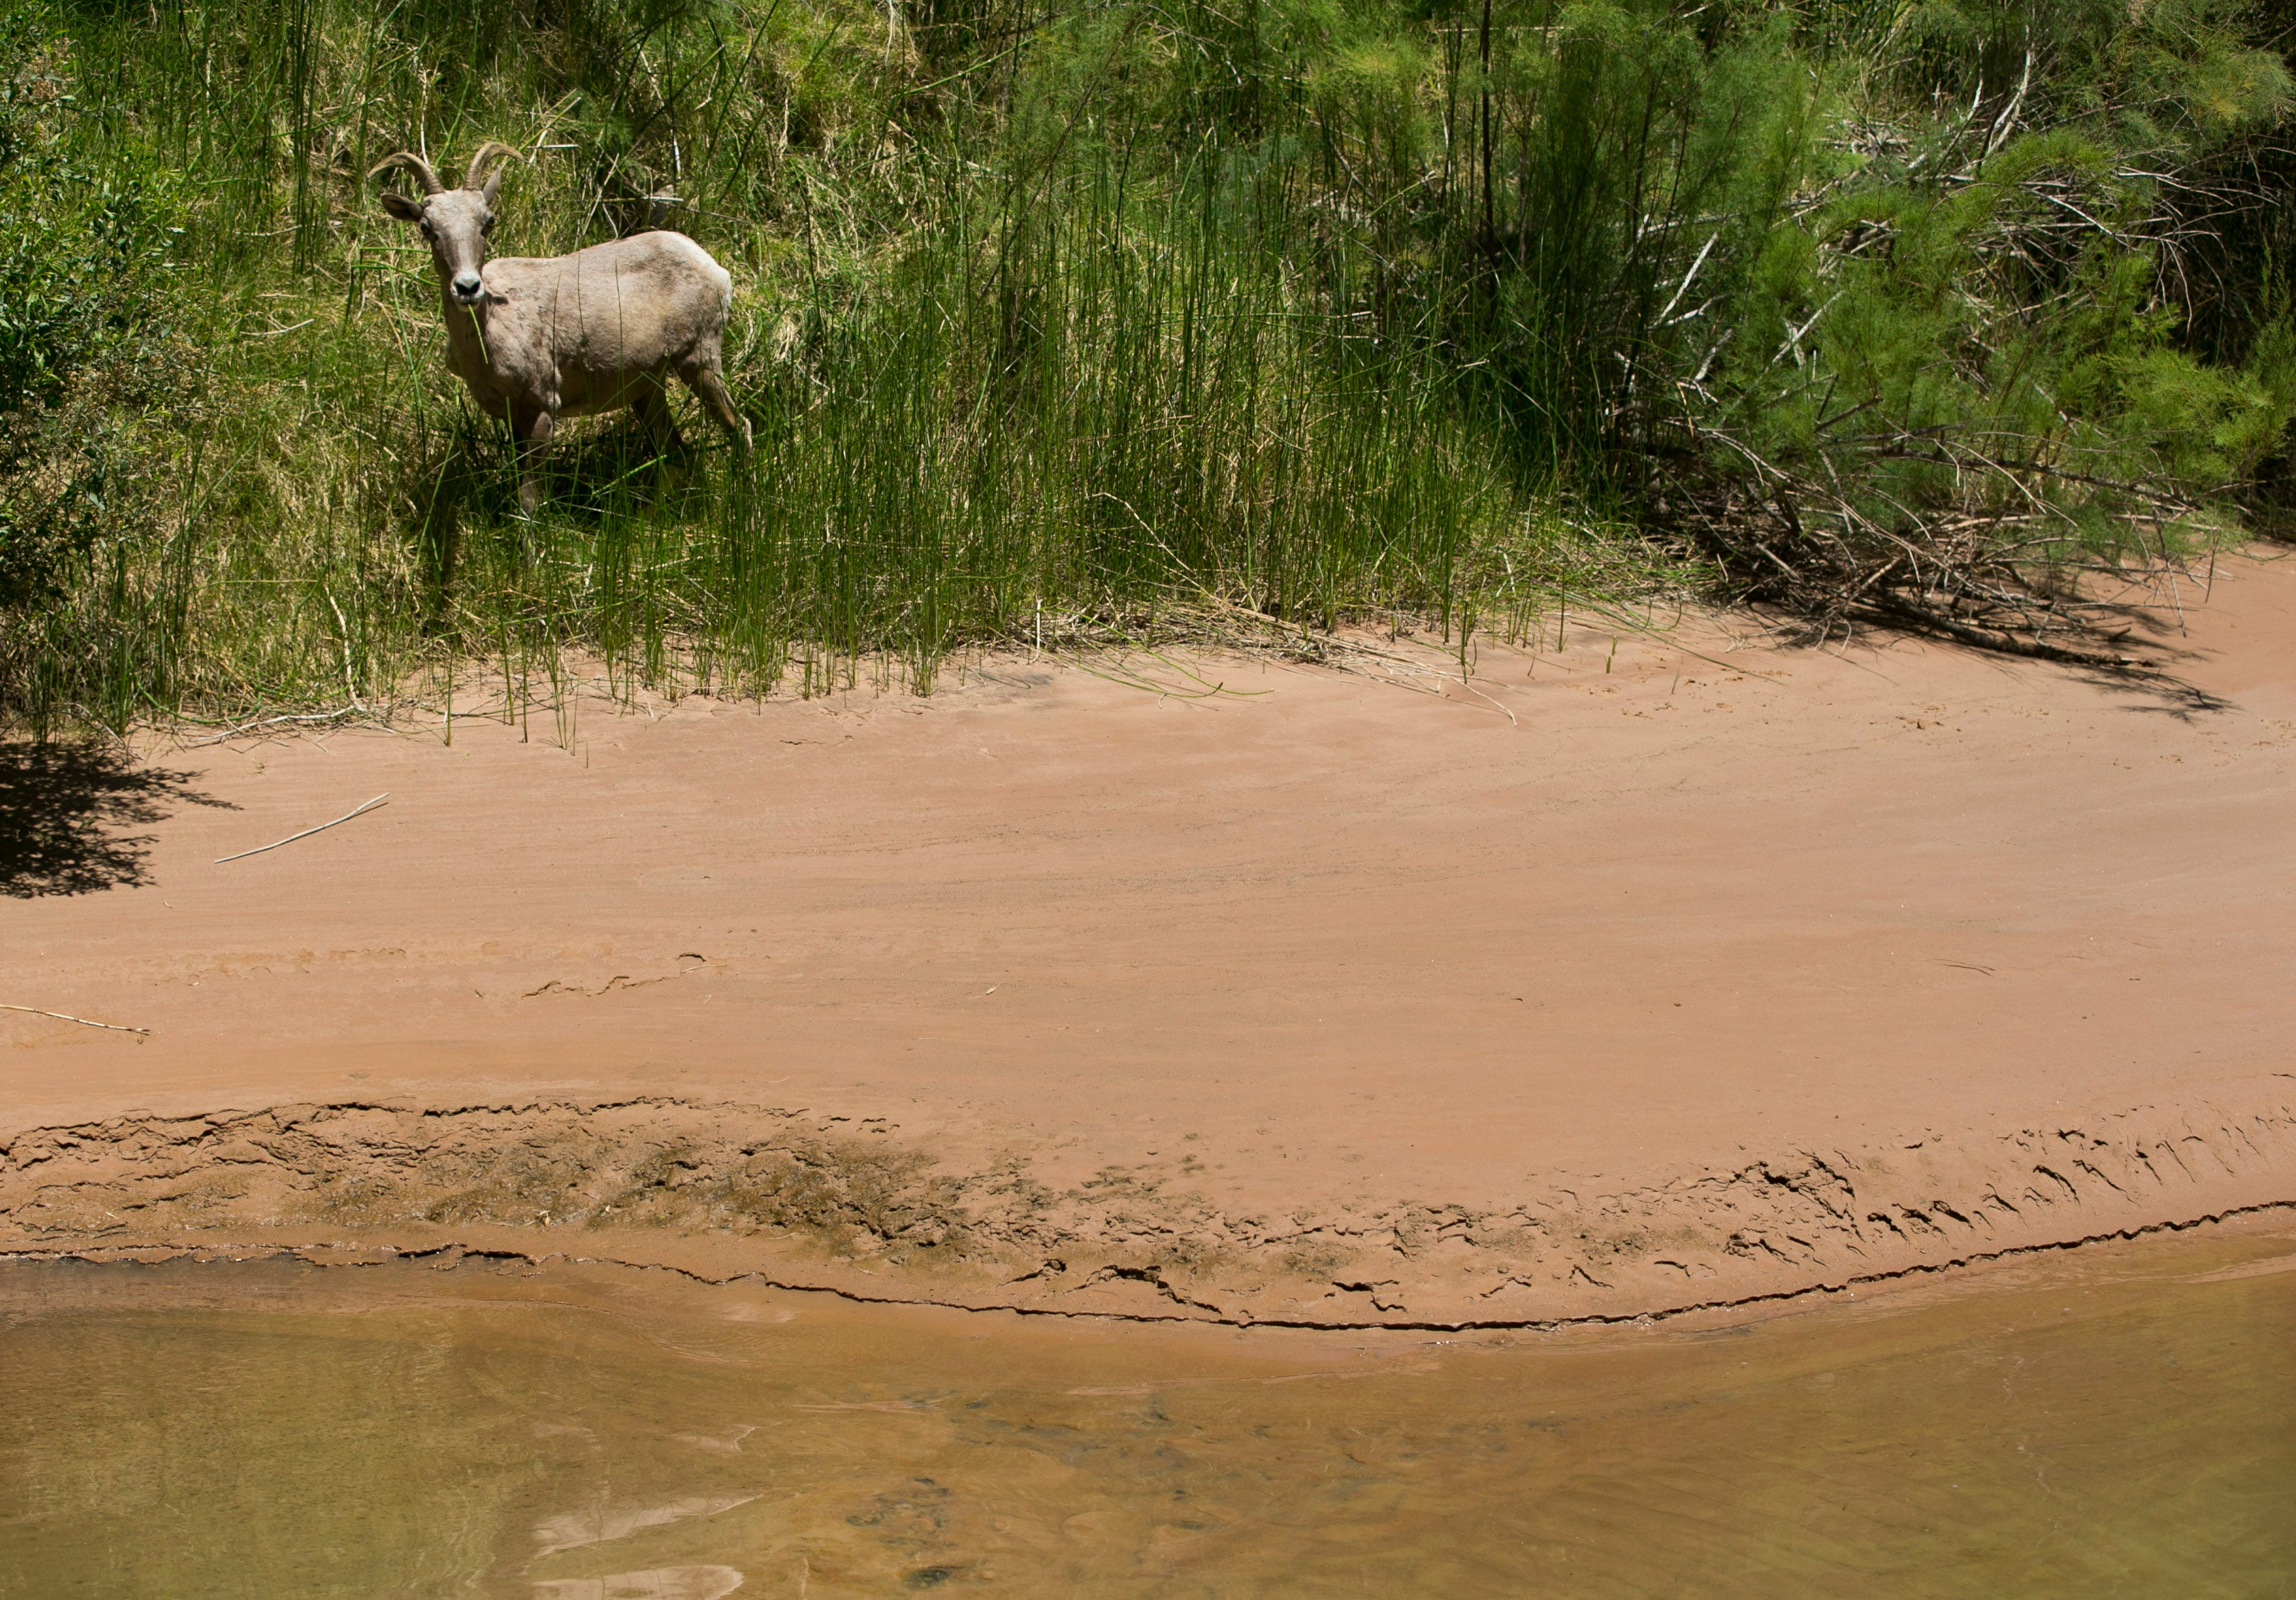 A desert bighorn sheep grazes along the banks of the Colorado River near river mile 185 in Grand Canyon National Park. Some of the sandbars and beaches that are built up after water releases erode back into the river over the following year.